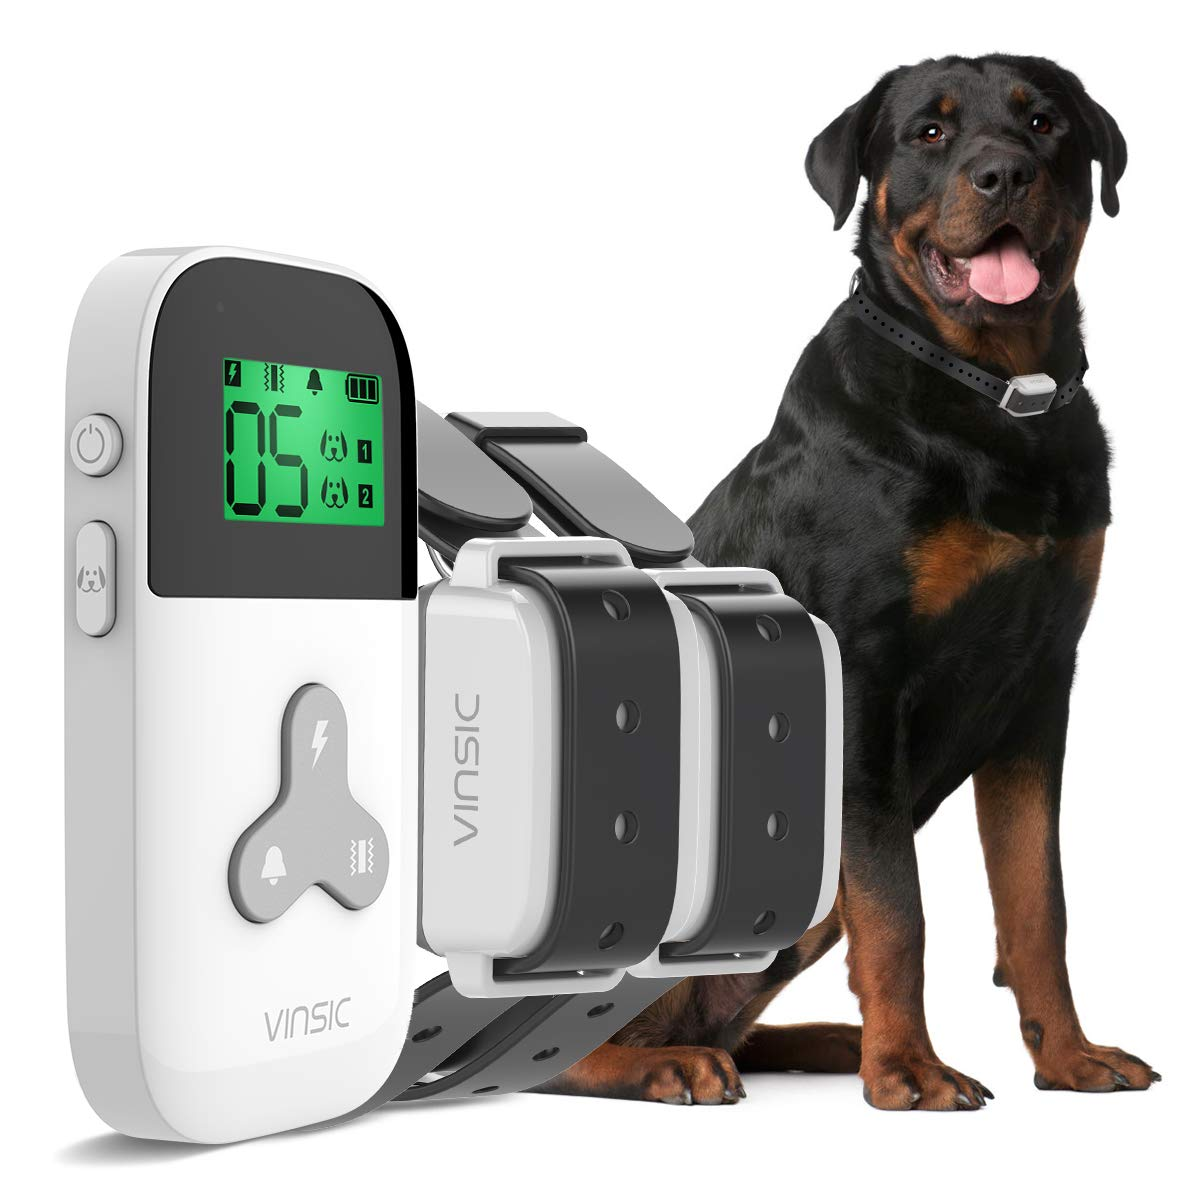 VINSIC Dog Shock Collars with Remote for 2 Dogs, Rainproof Dog Training Collars with 300yd Range Remote Control, for Small Big Dog bark Collar with LCD Display by VINSIC